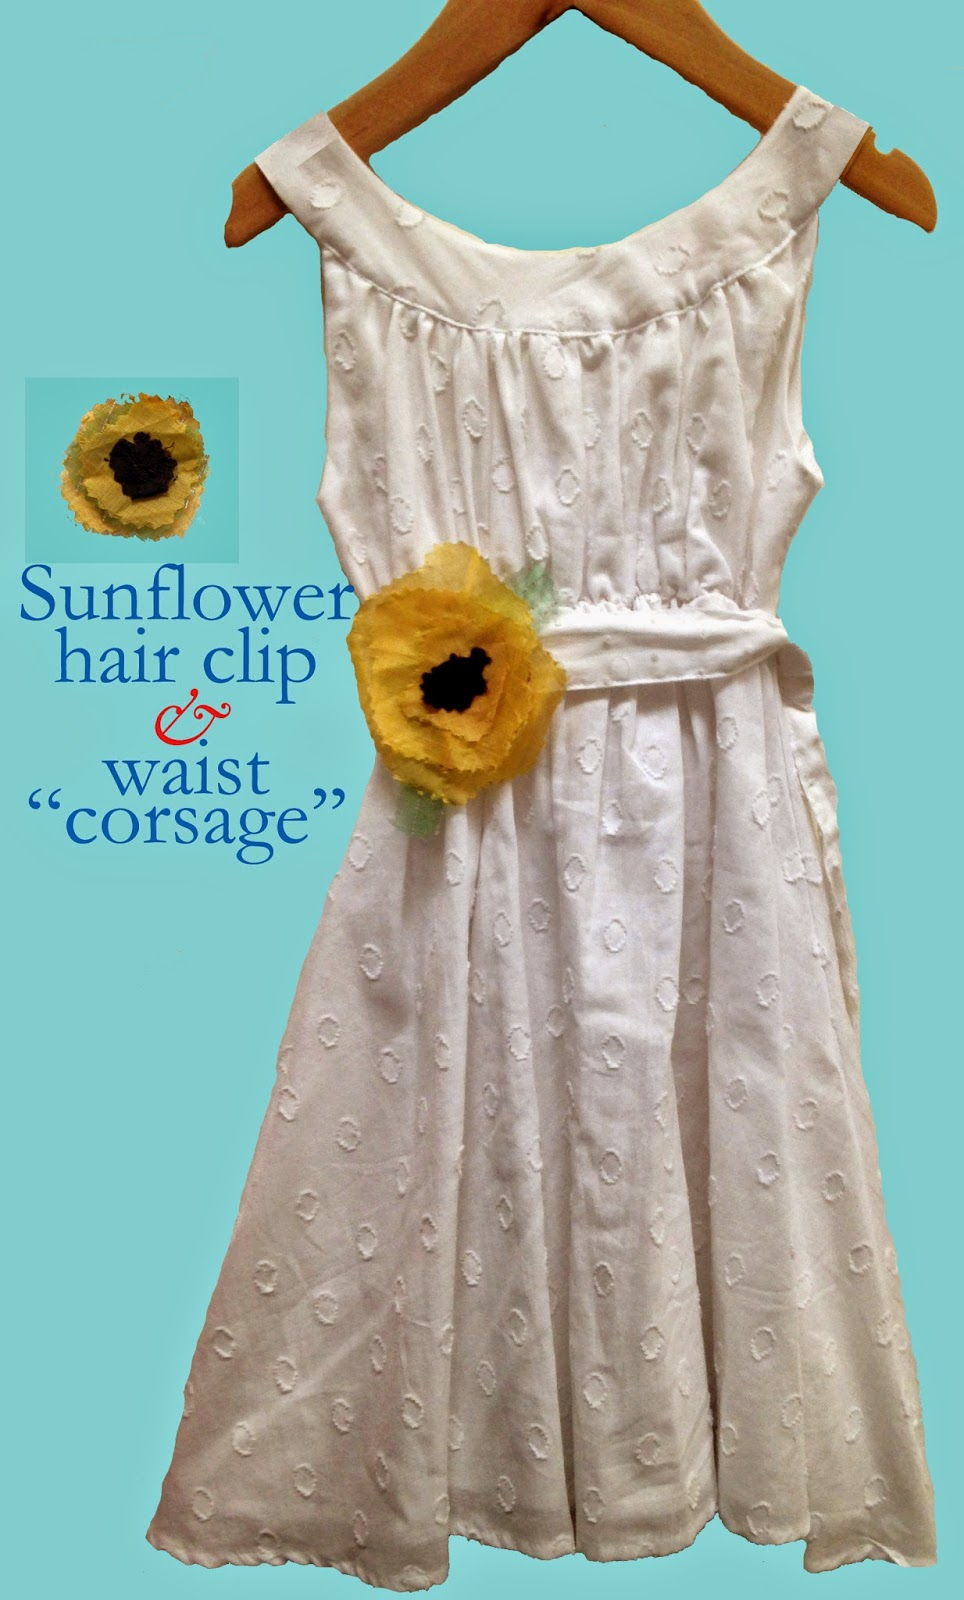 featured in martha stewart weddings, gertrude dress, girls flower girl dress, wedding, junior bridesmaid dress, sunflowers, bespoke, custom made dresses, tweens